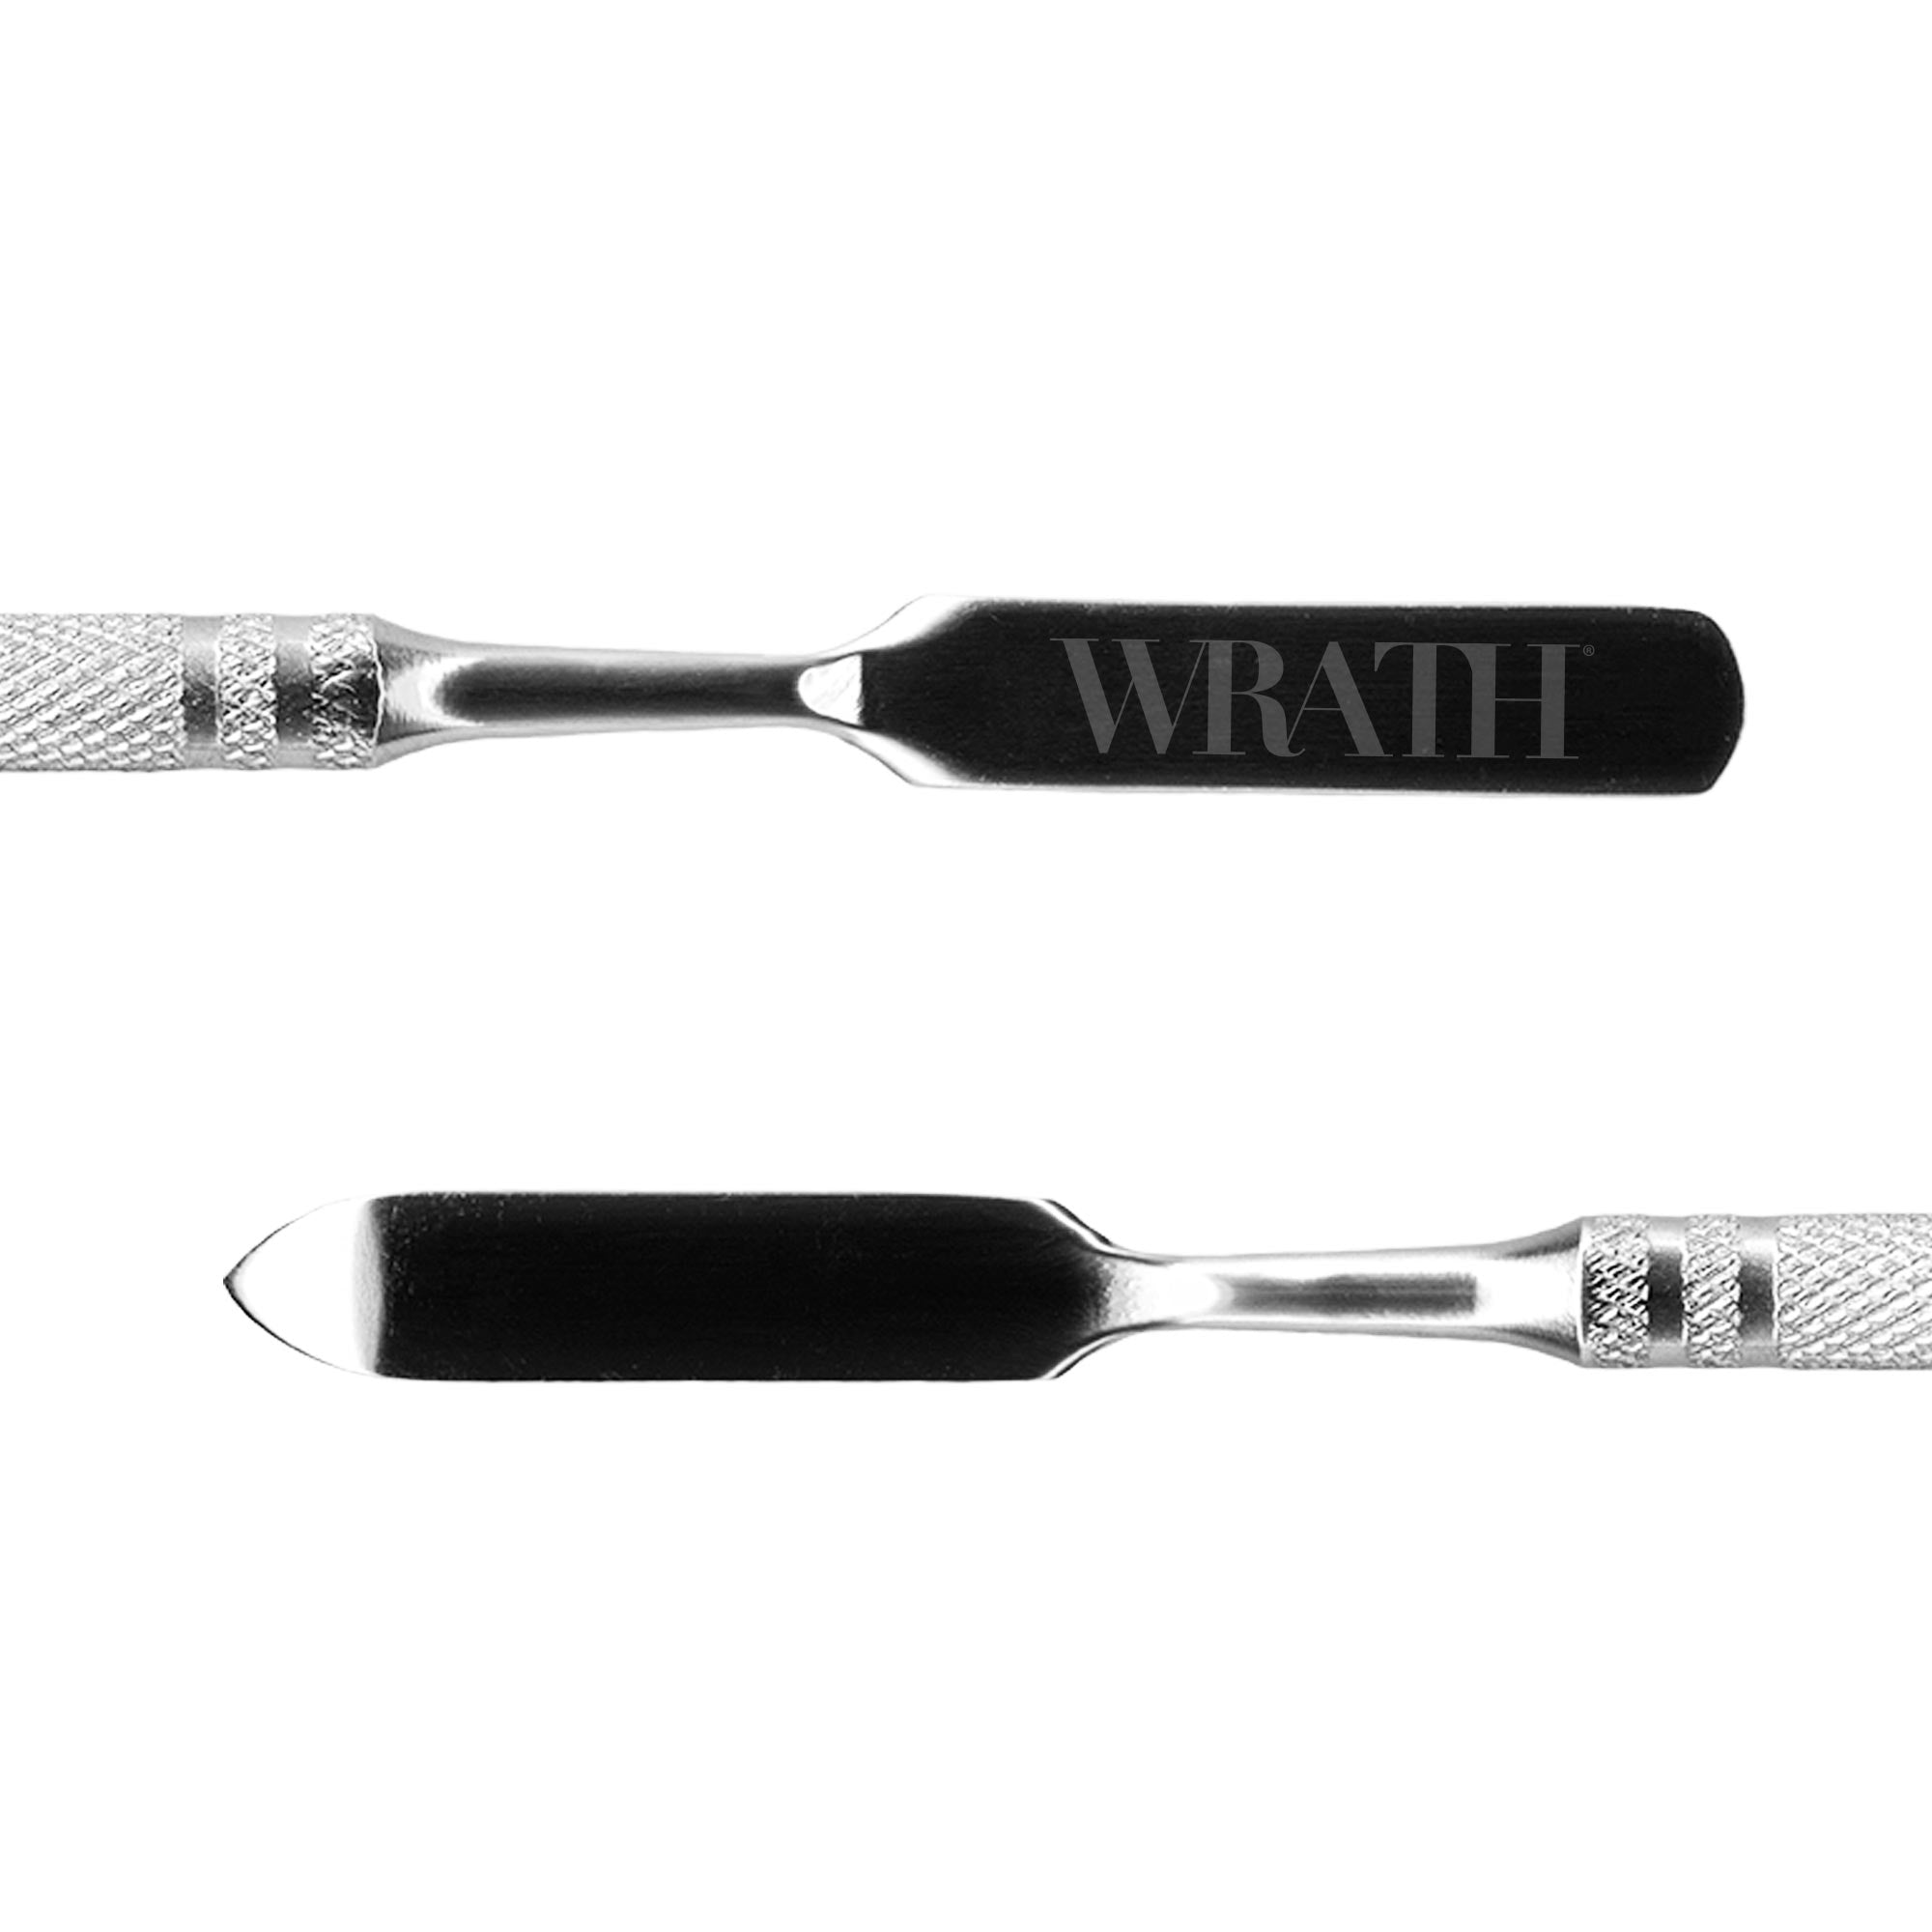 Wrath Stainless Steel Double Ended Spatula